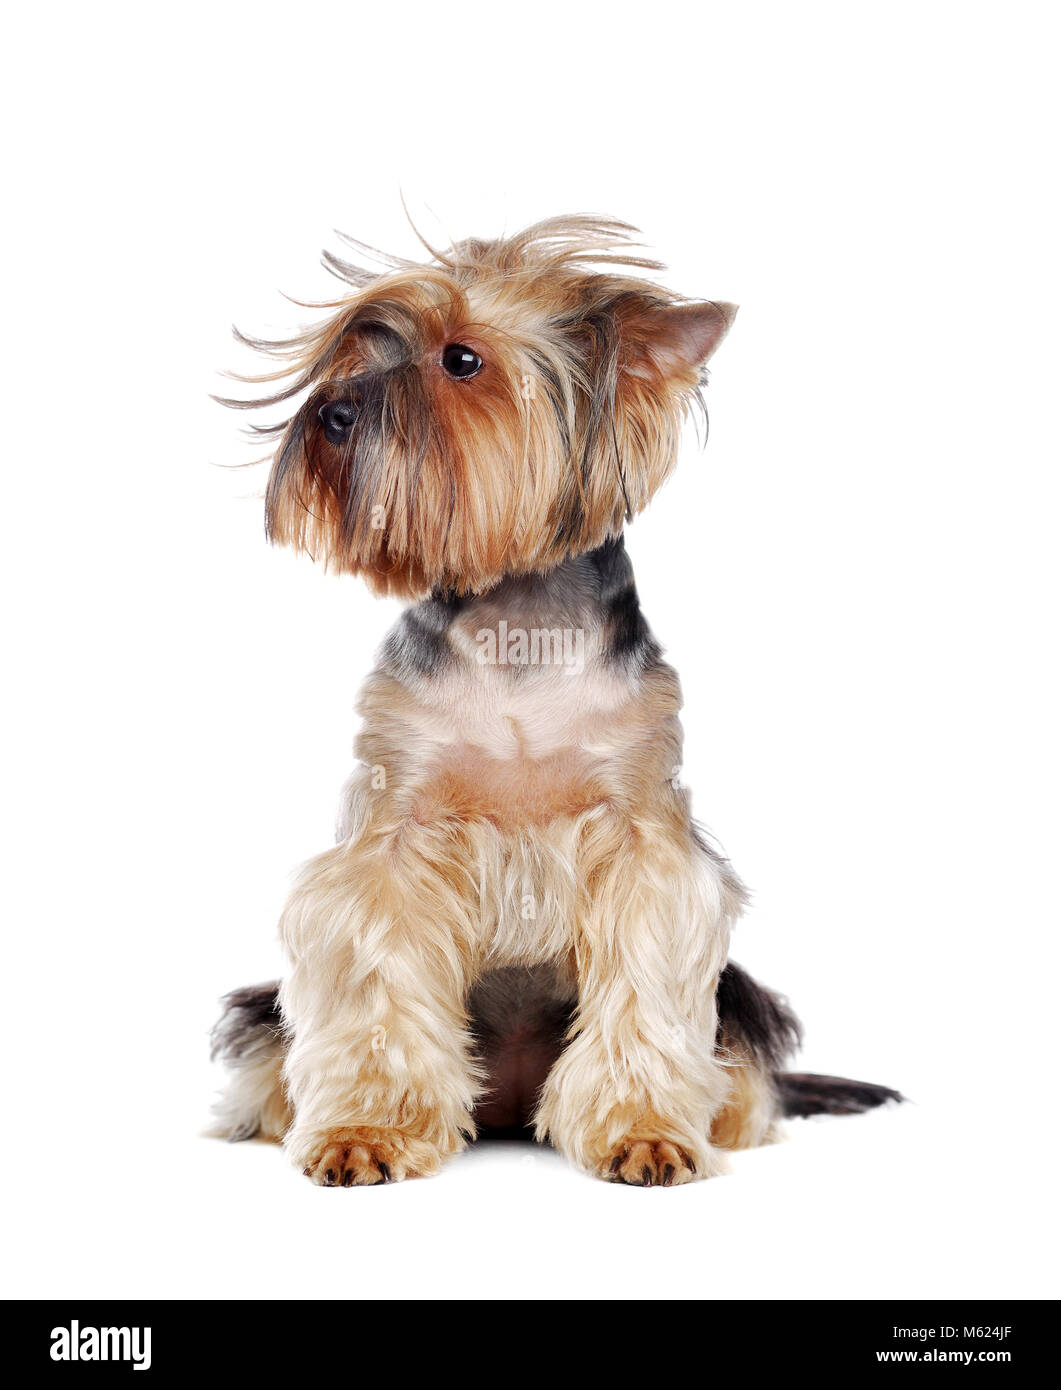 Yorkshire Terrier with a Tousled hairstyle - Stock Image